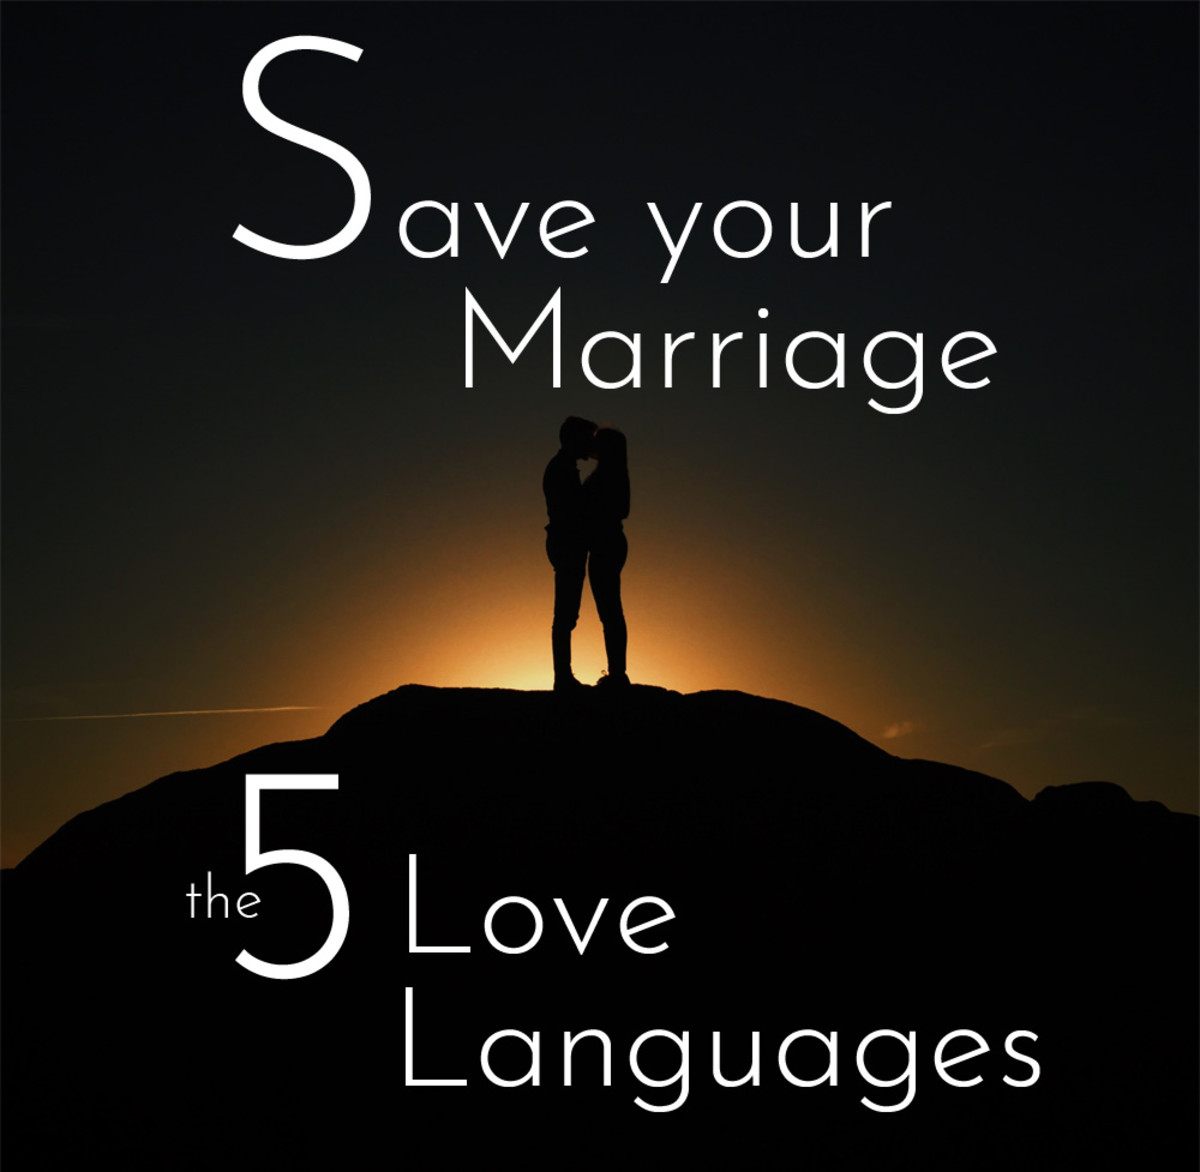 Love Each Other When Two Souls: Can The 5 Love Languages Save Your Marriage?